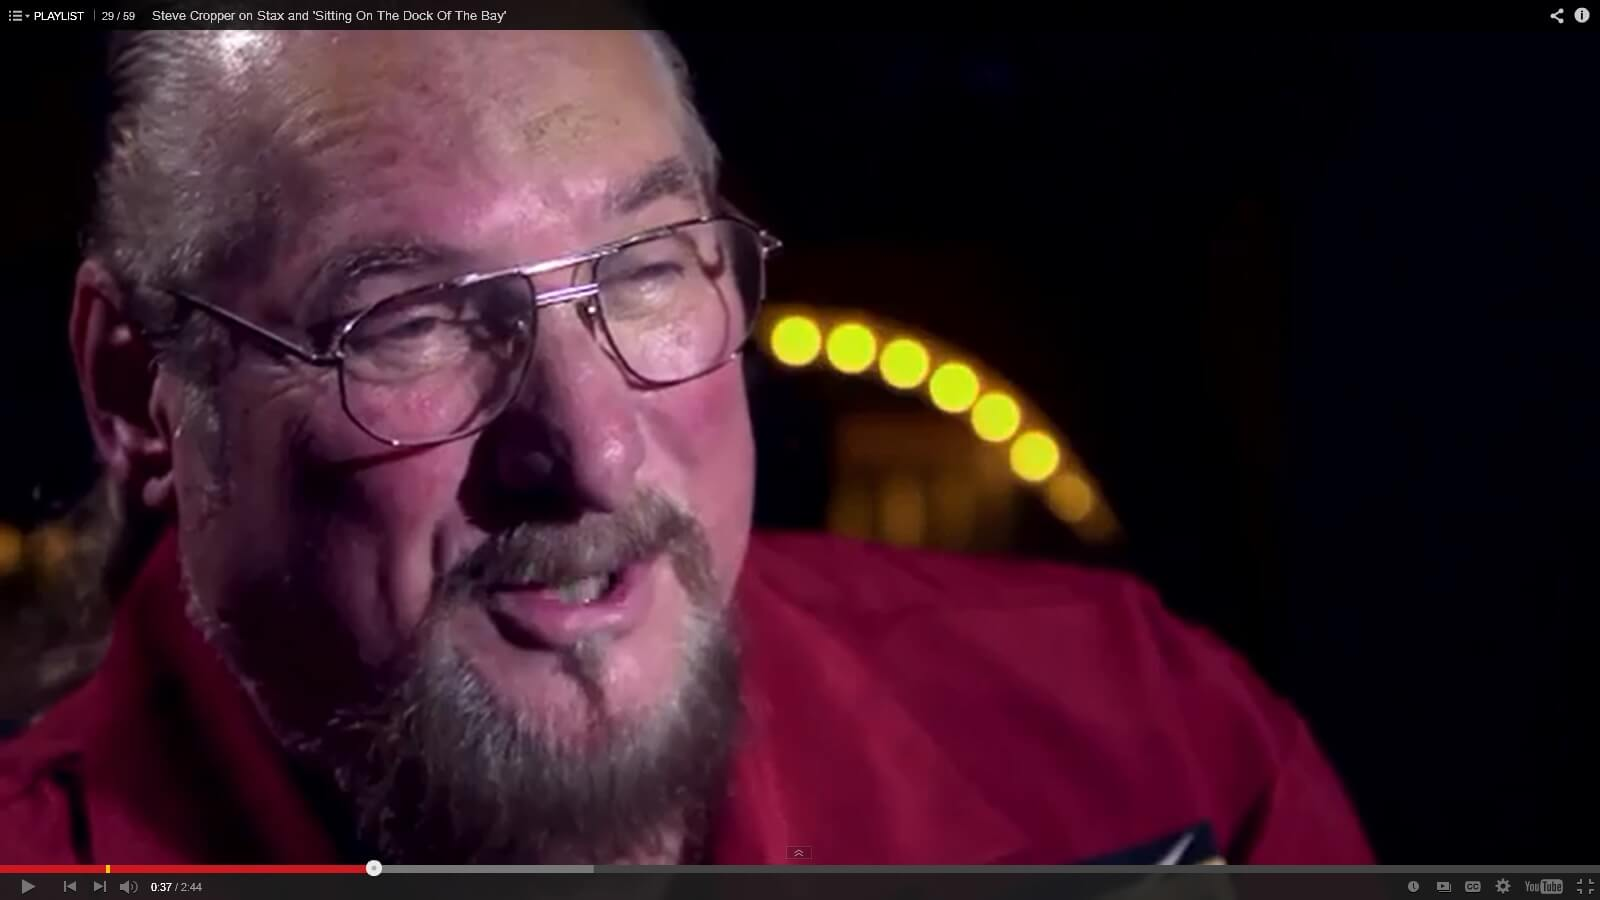 In This Segment From The Ronnie Wood Show Songwriter Steve Cropper Discusses Co Writing Sittin On Dock Of Bay With Otis Redding